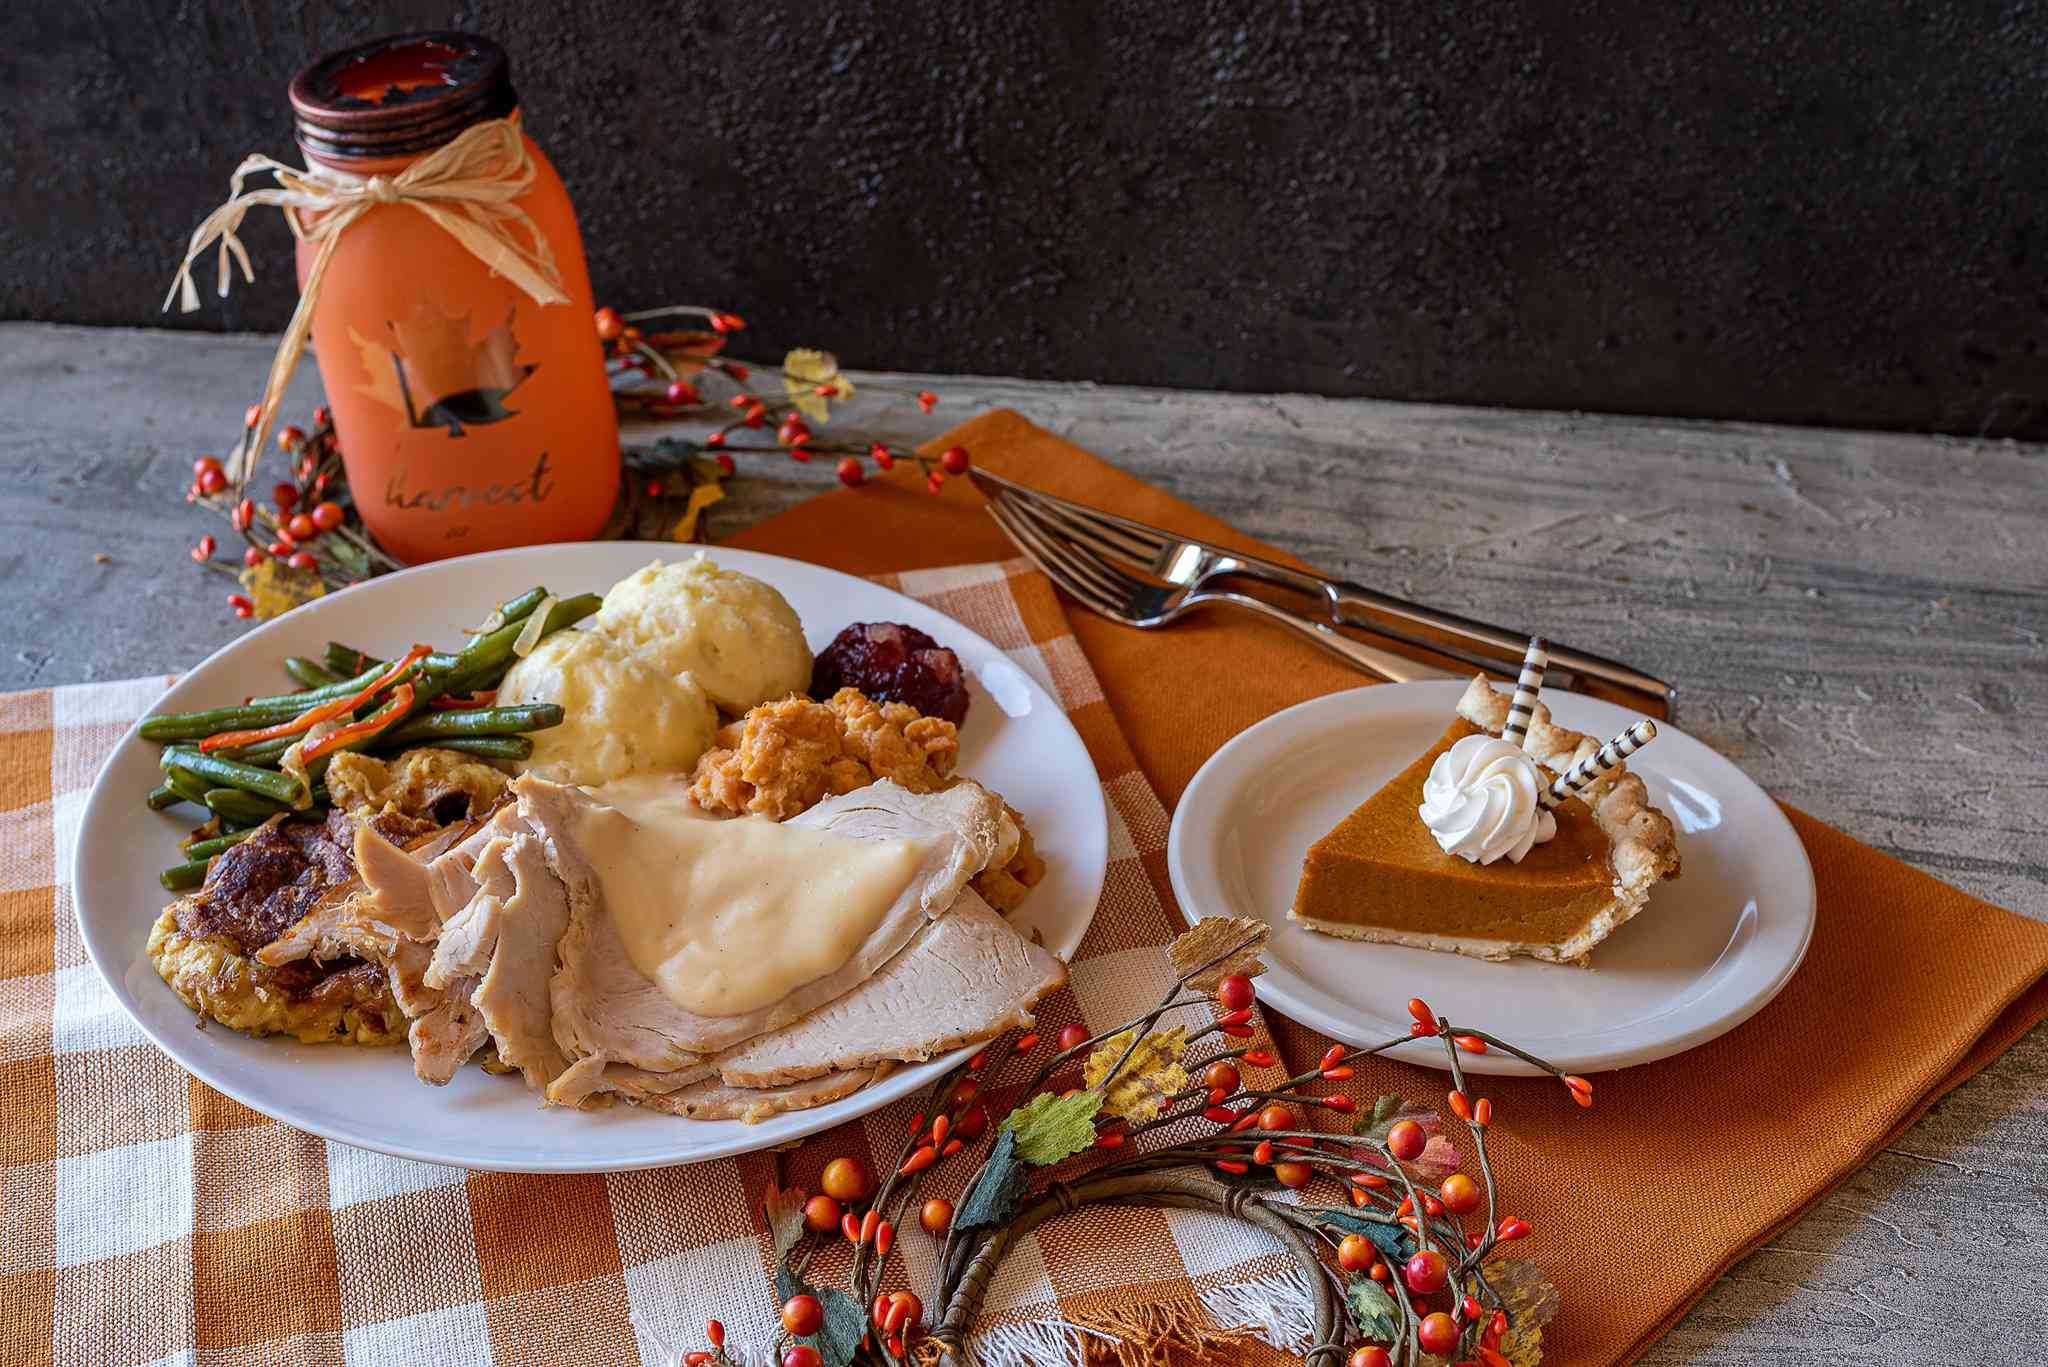 Thanksgiving meal with pumpkin pie at Chompie's